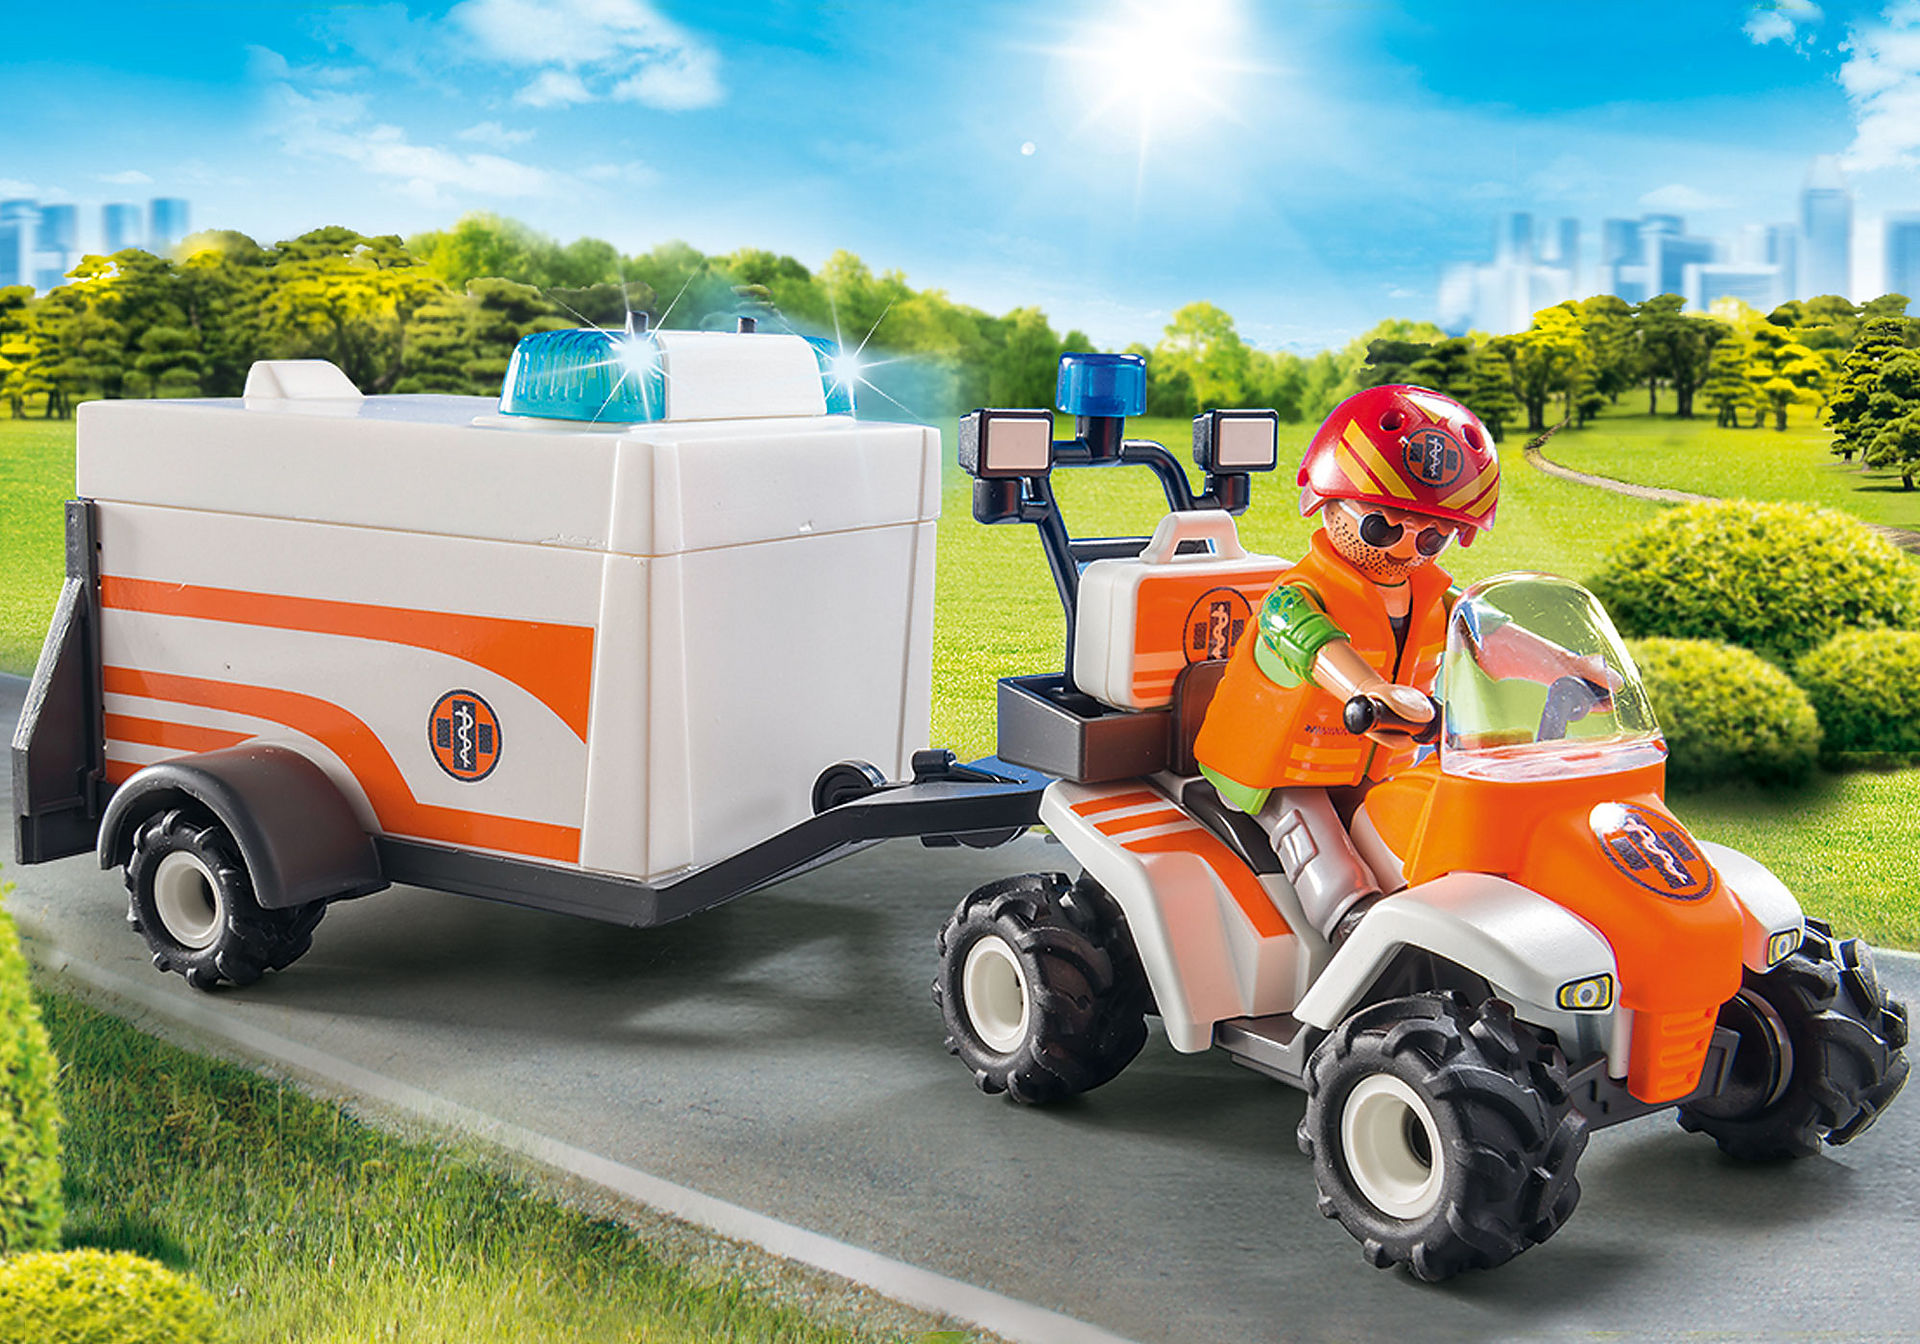 http://media.playmobil.com/i/playmobil/70053_product_extra2/Quad soccorso con carrello